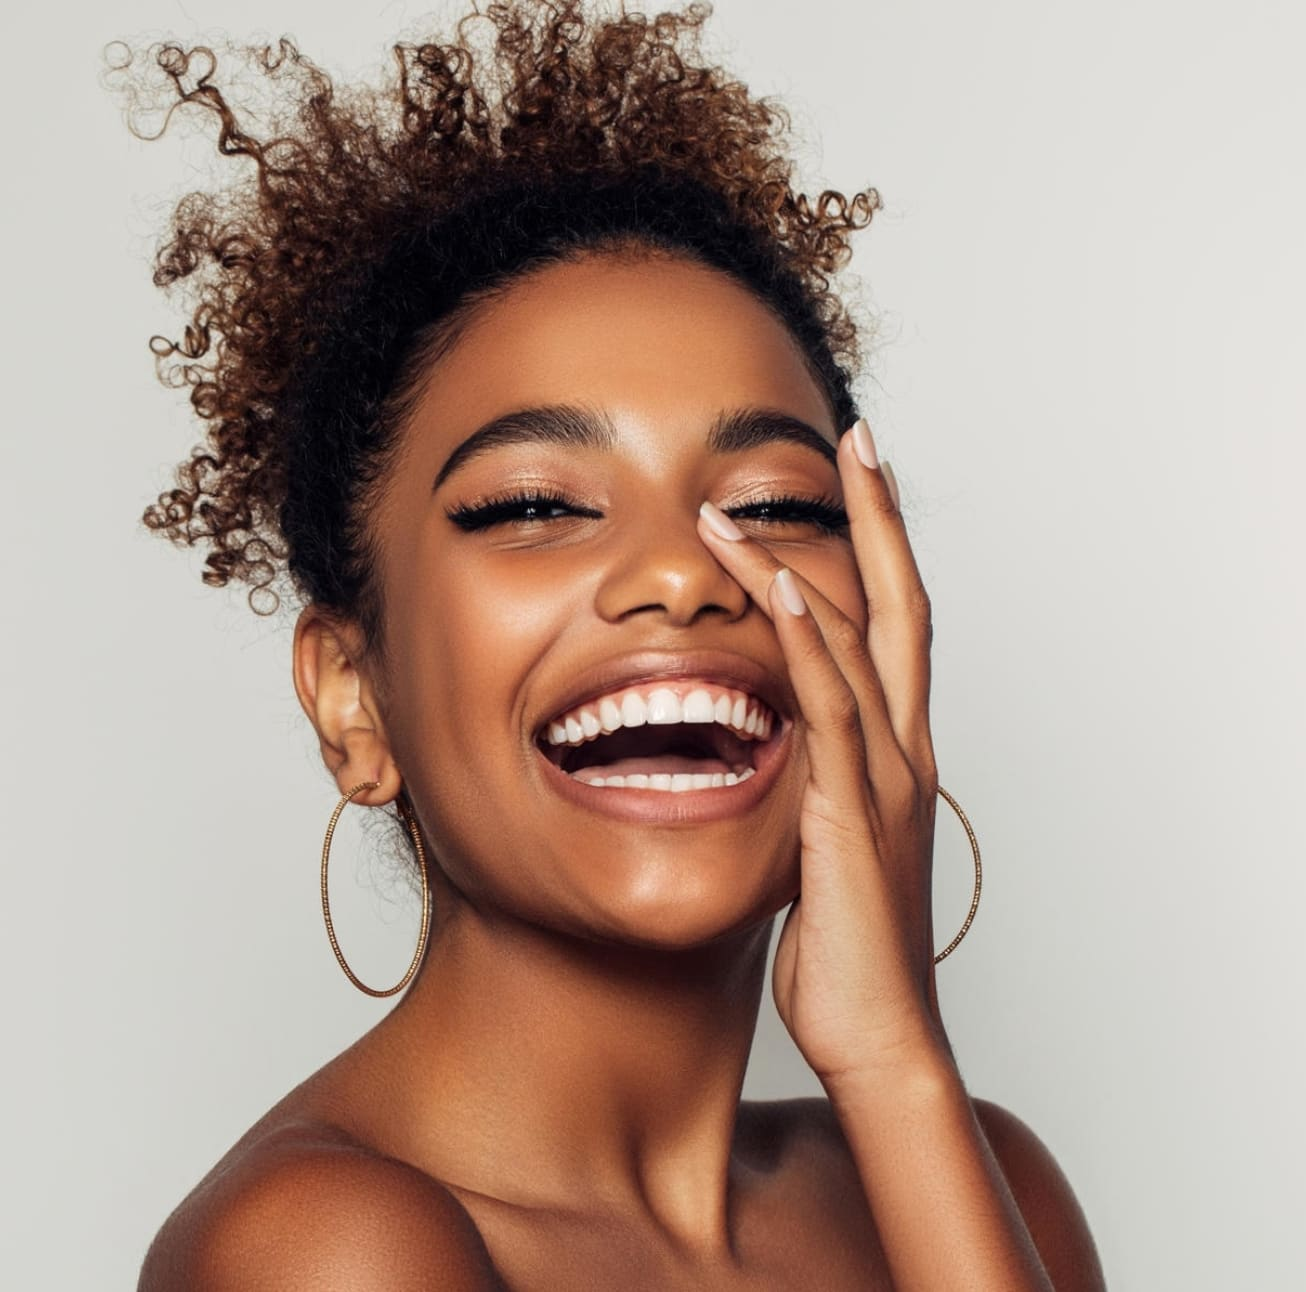 Laughing woman with great skin touching her face